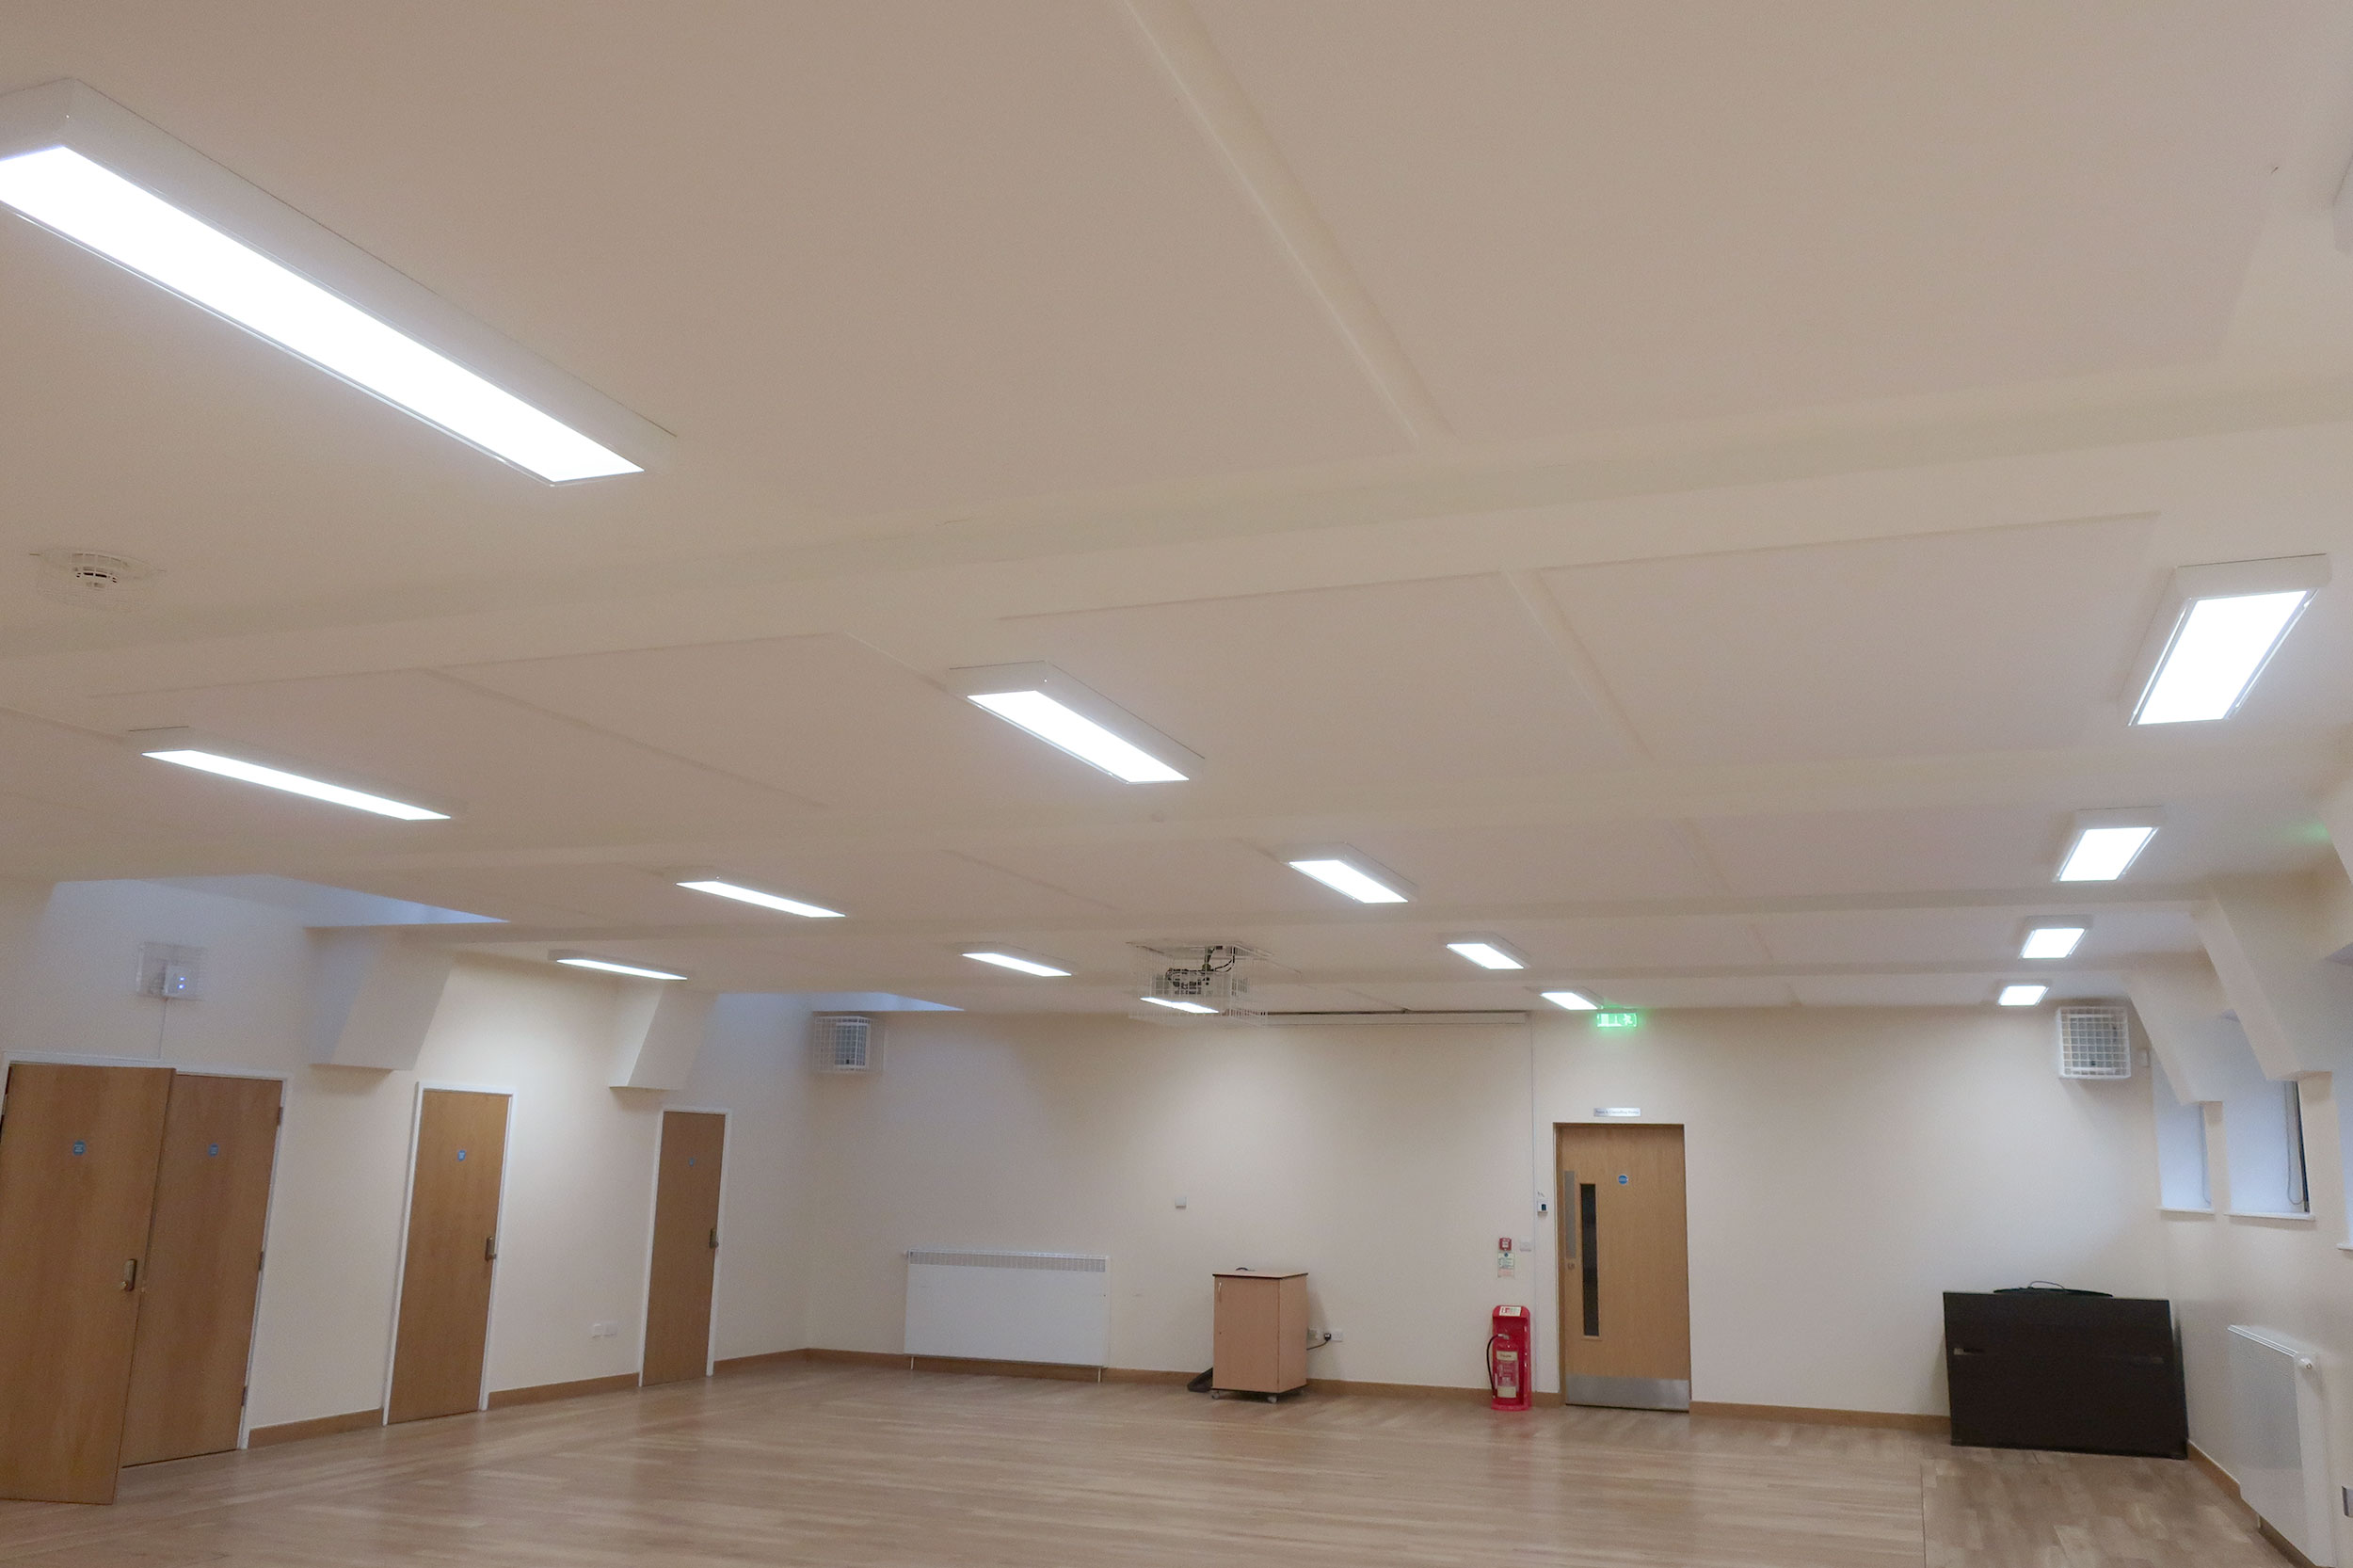 Sound Absorbing Panels In Church Hall